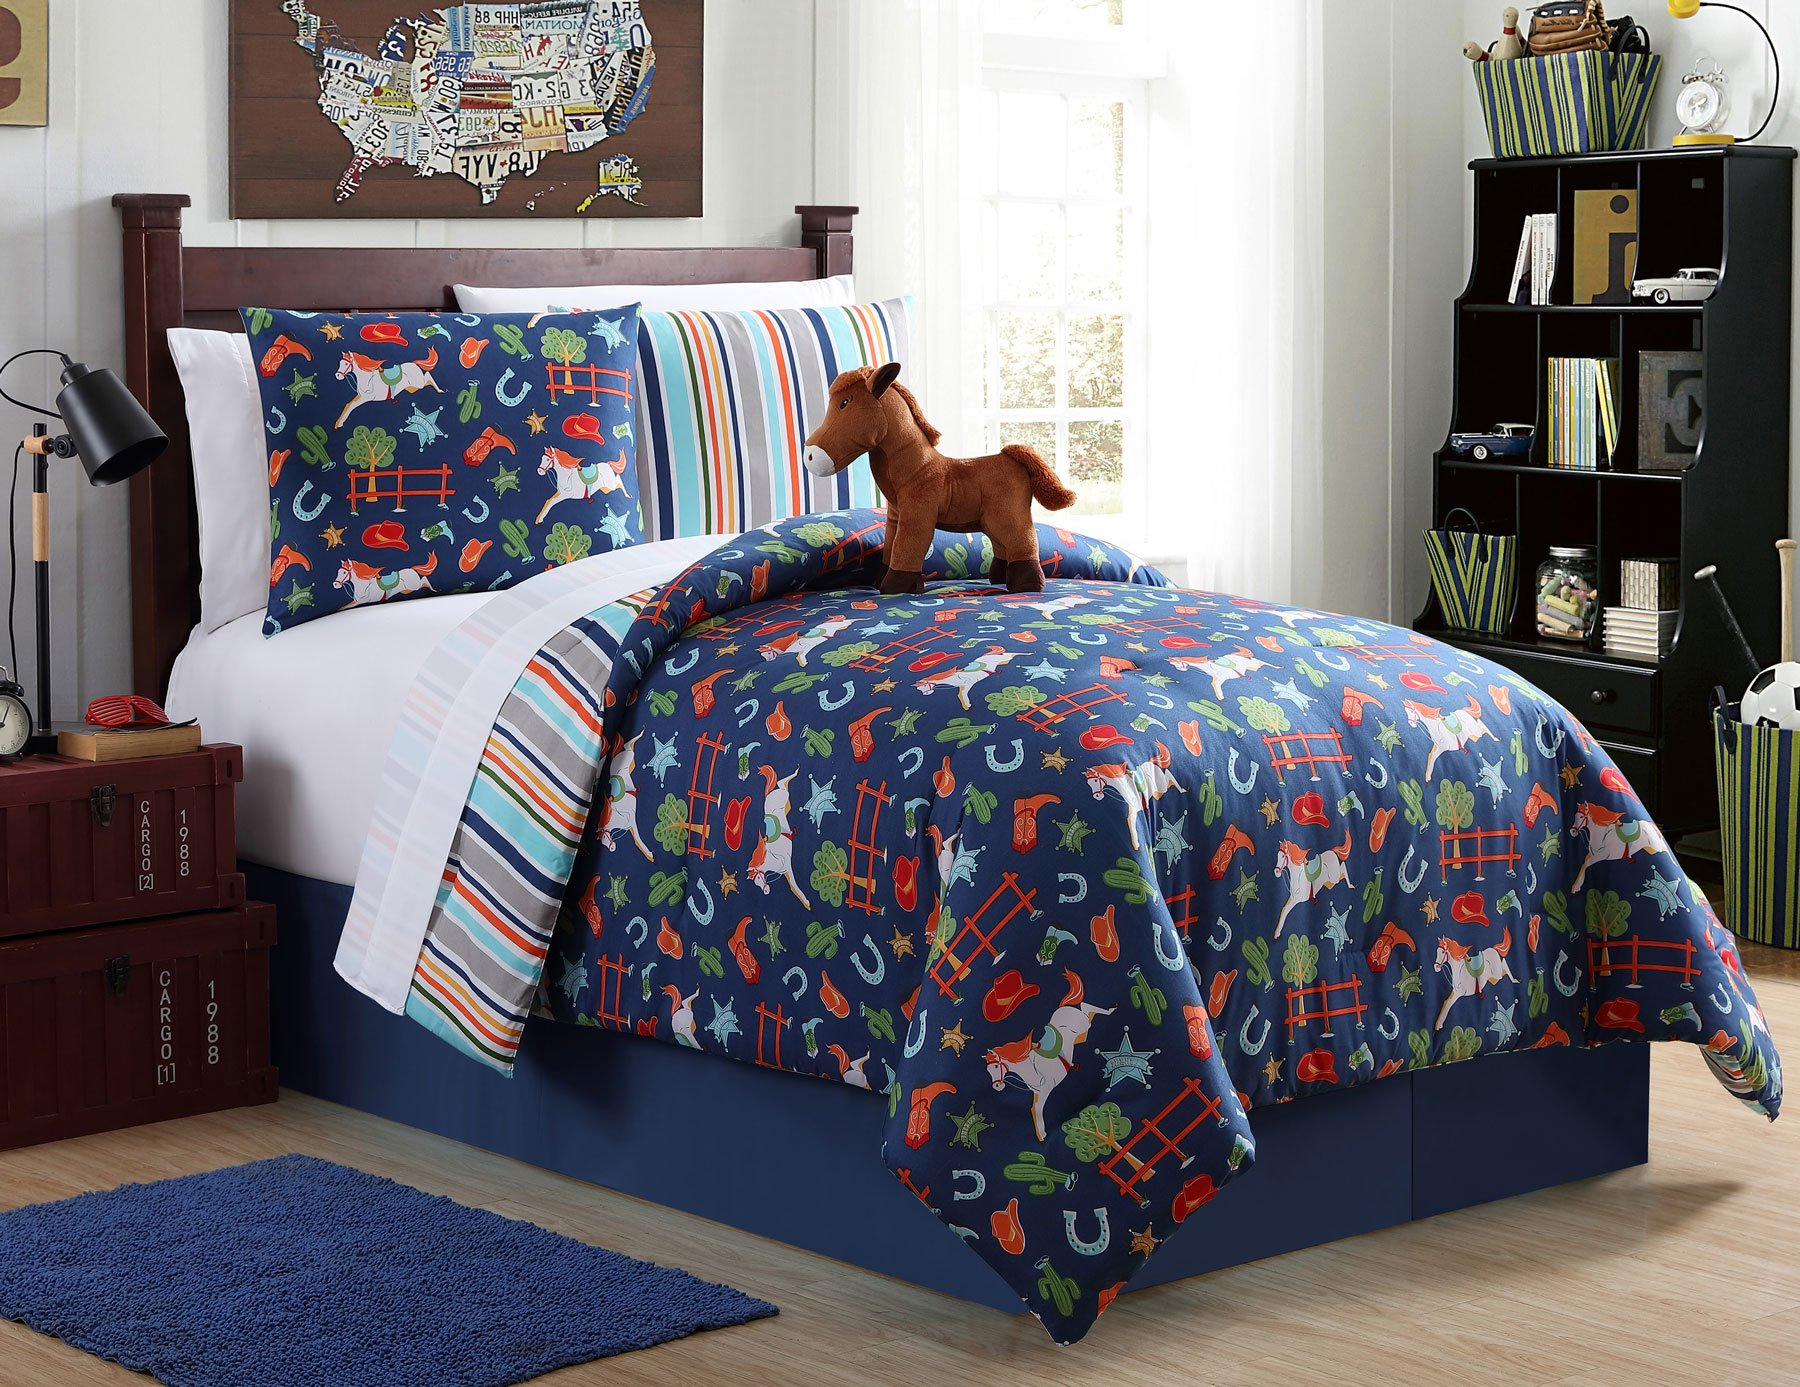 Twin Horse Bedding Comforter 7 Piece Bed in a Bag Set Cowboy Western with Sheets